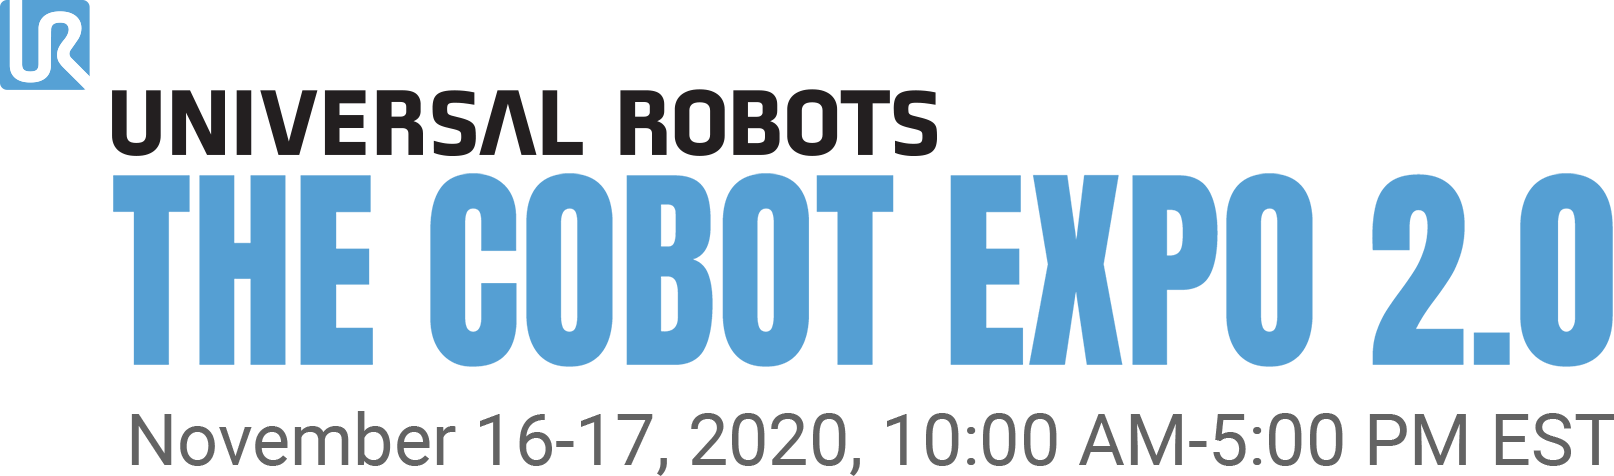 Universal Robots | The Cobot Expo 2.0: November 16-17, 2020, 10:00 AM - 5:00 PM EST